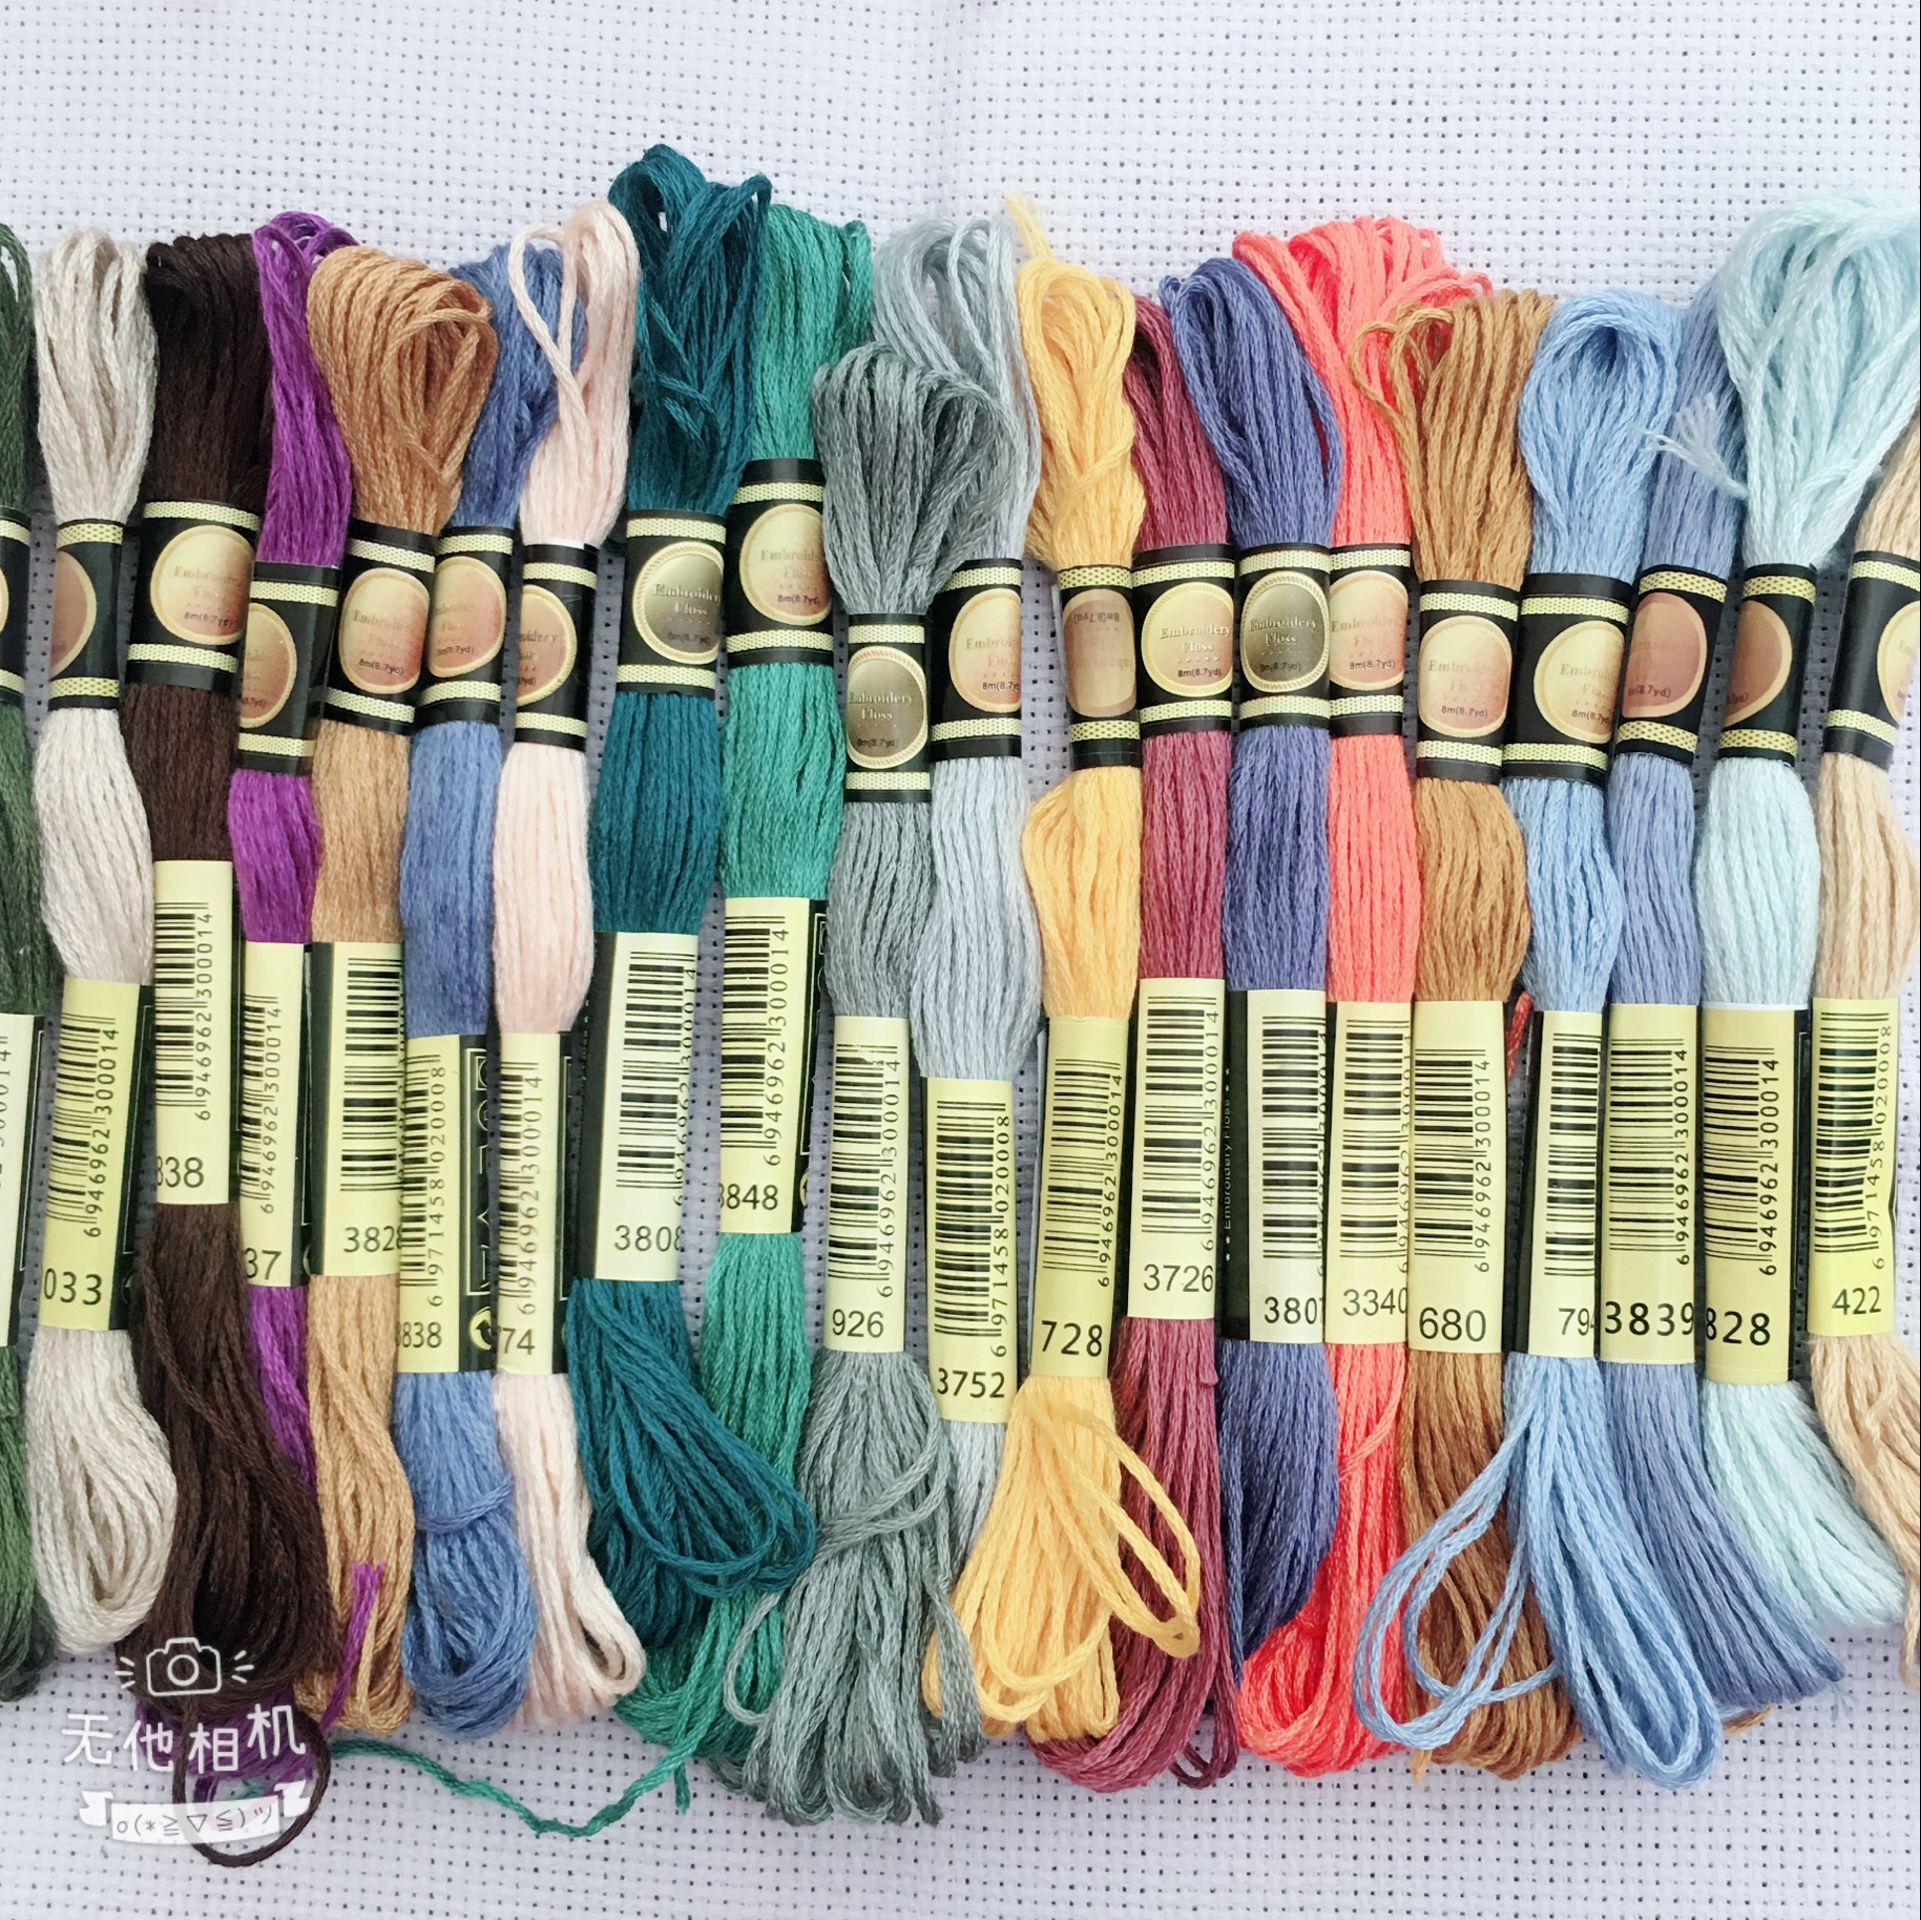 Oneroom 50/100/150/250 Colors DMC Similar 100% Cotton Embroidery Thread Kits For Cross Stitch Mouline 6 Strands Floss 8m